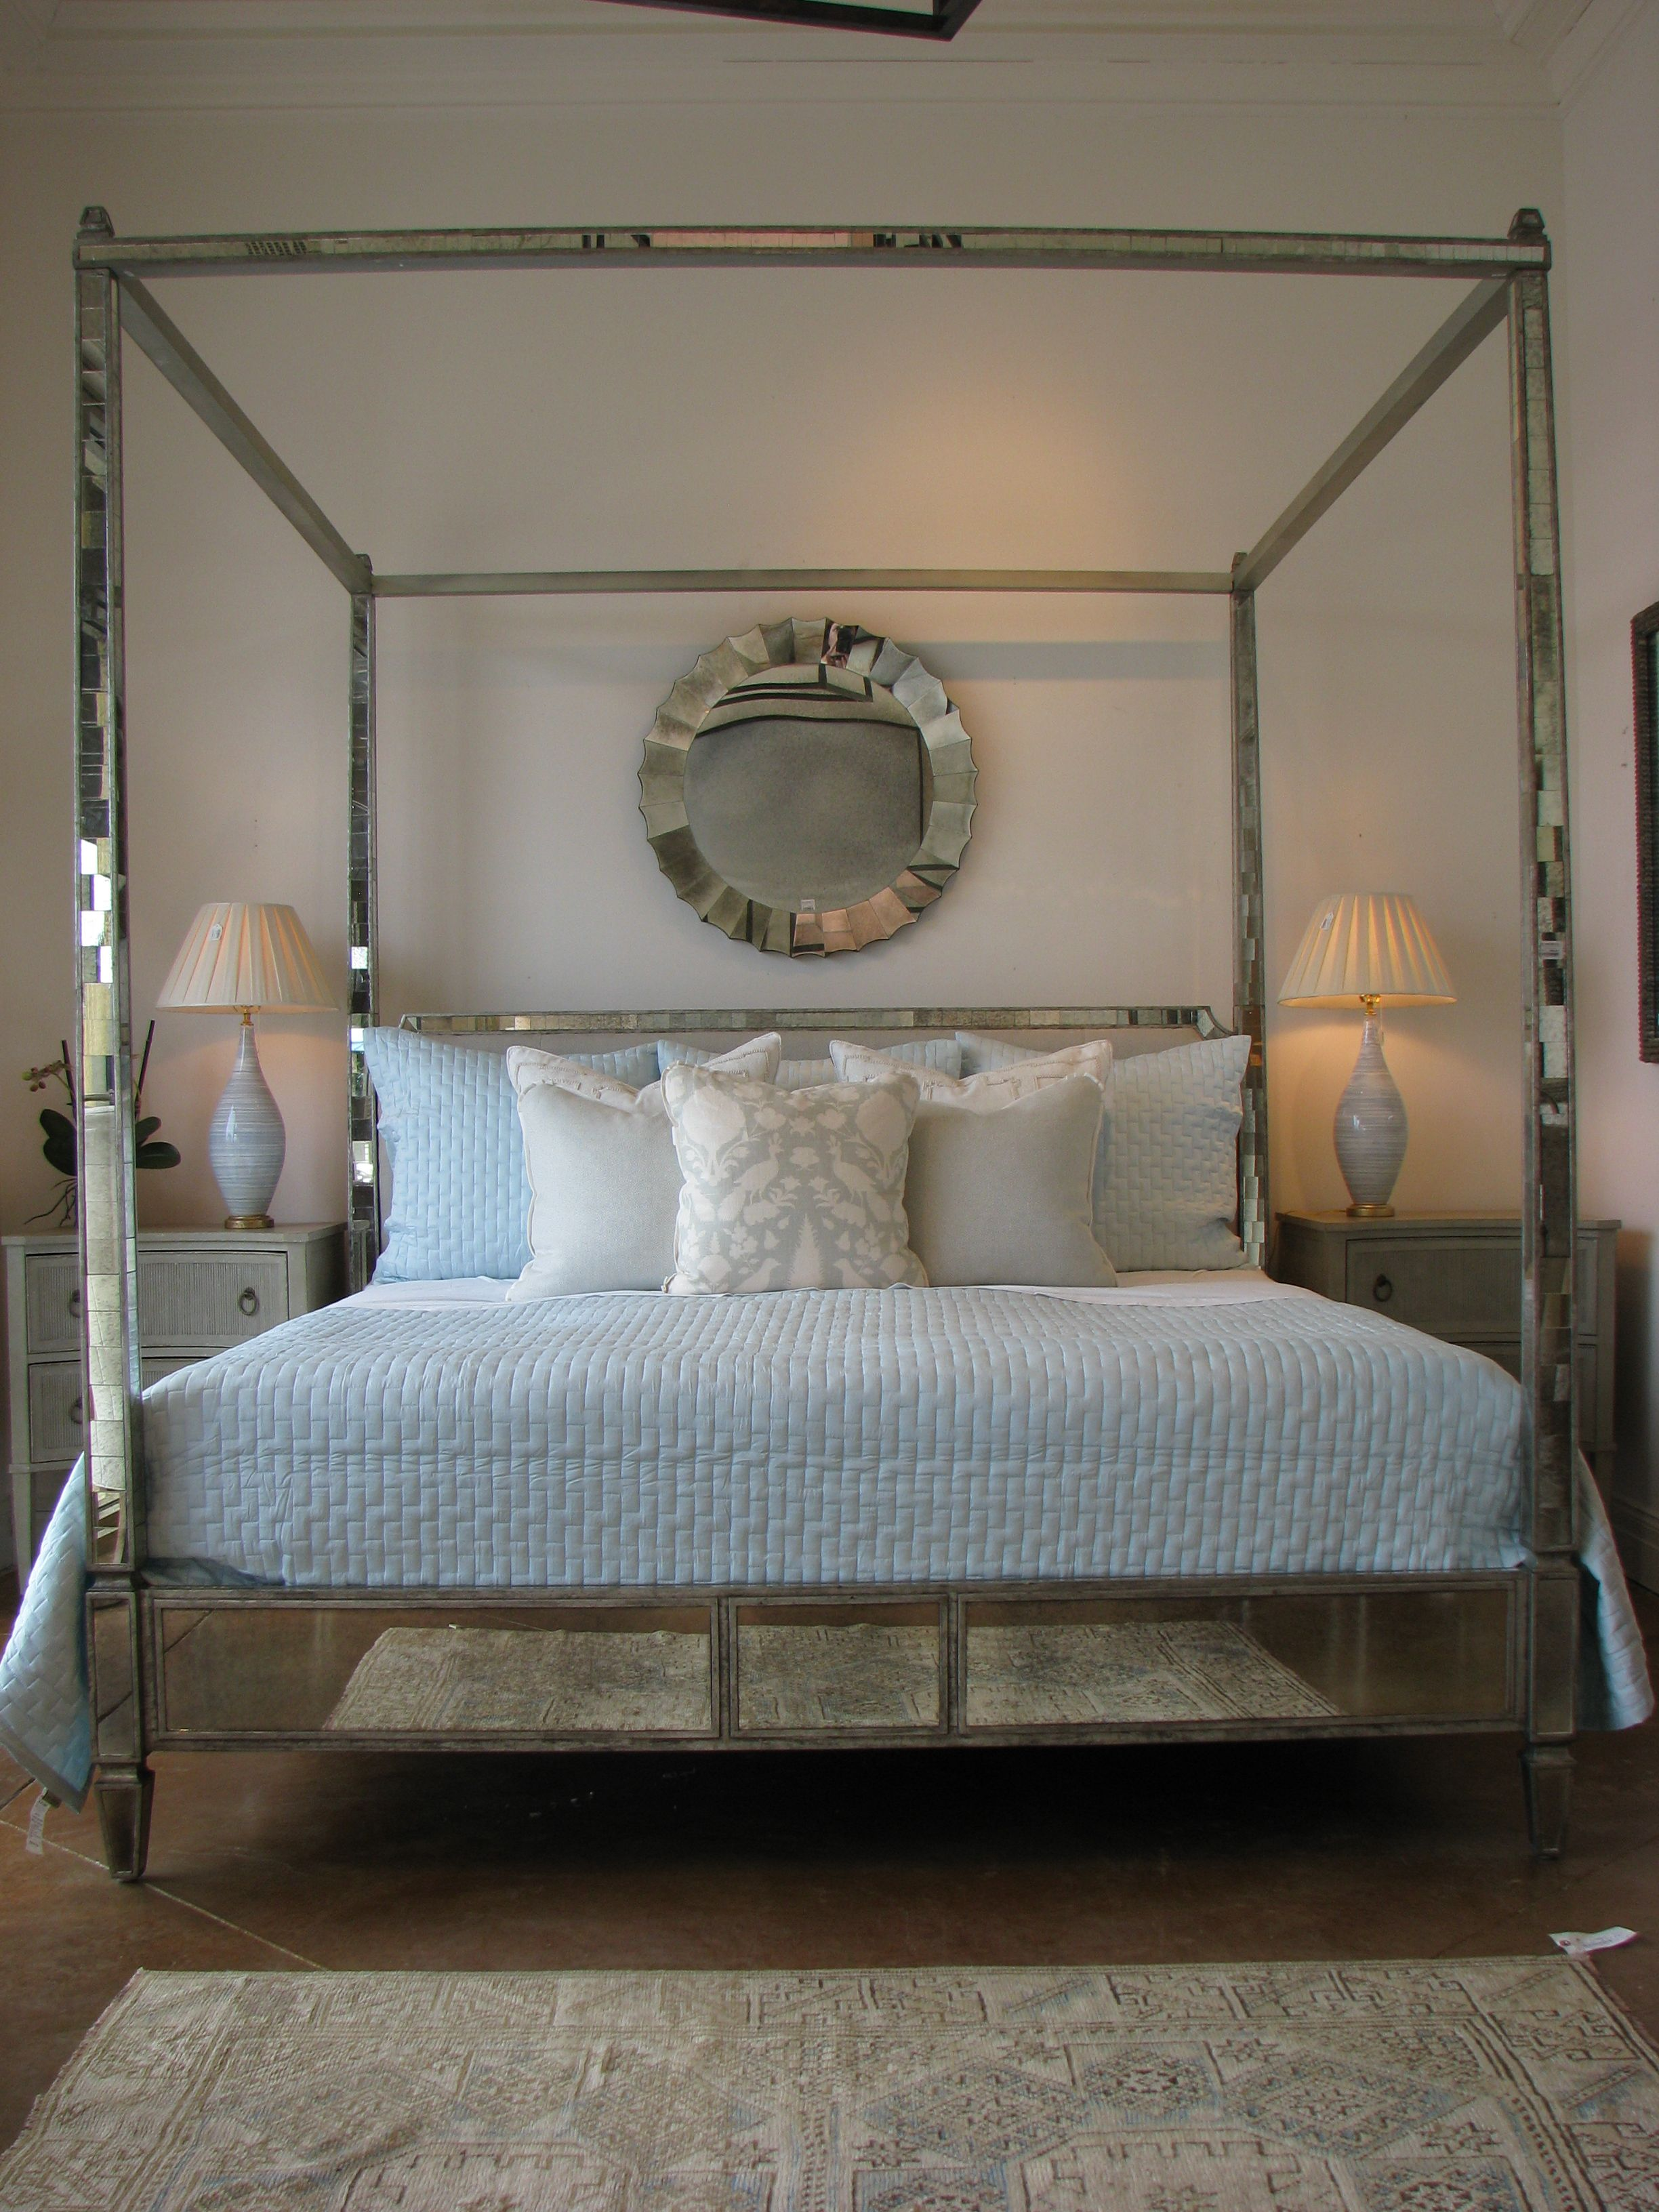 Mrs Howard Personal Shopper Beds Mirror Canopy Bed Canopy Bed